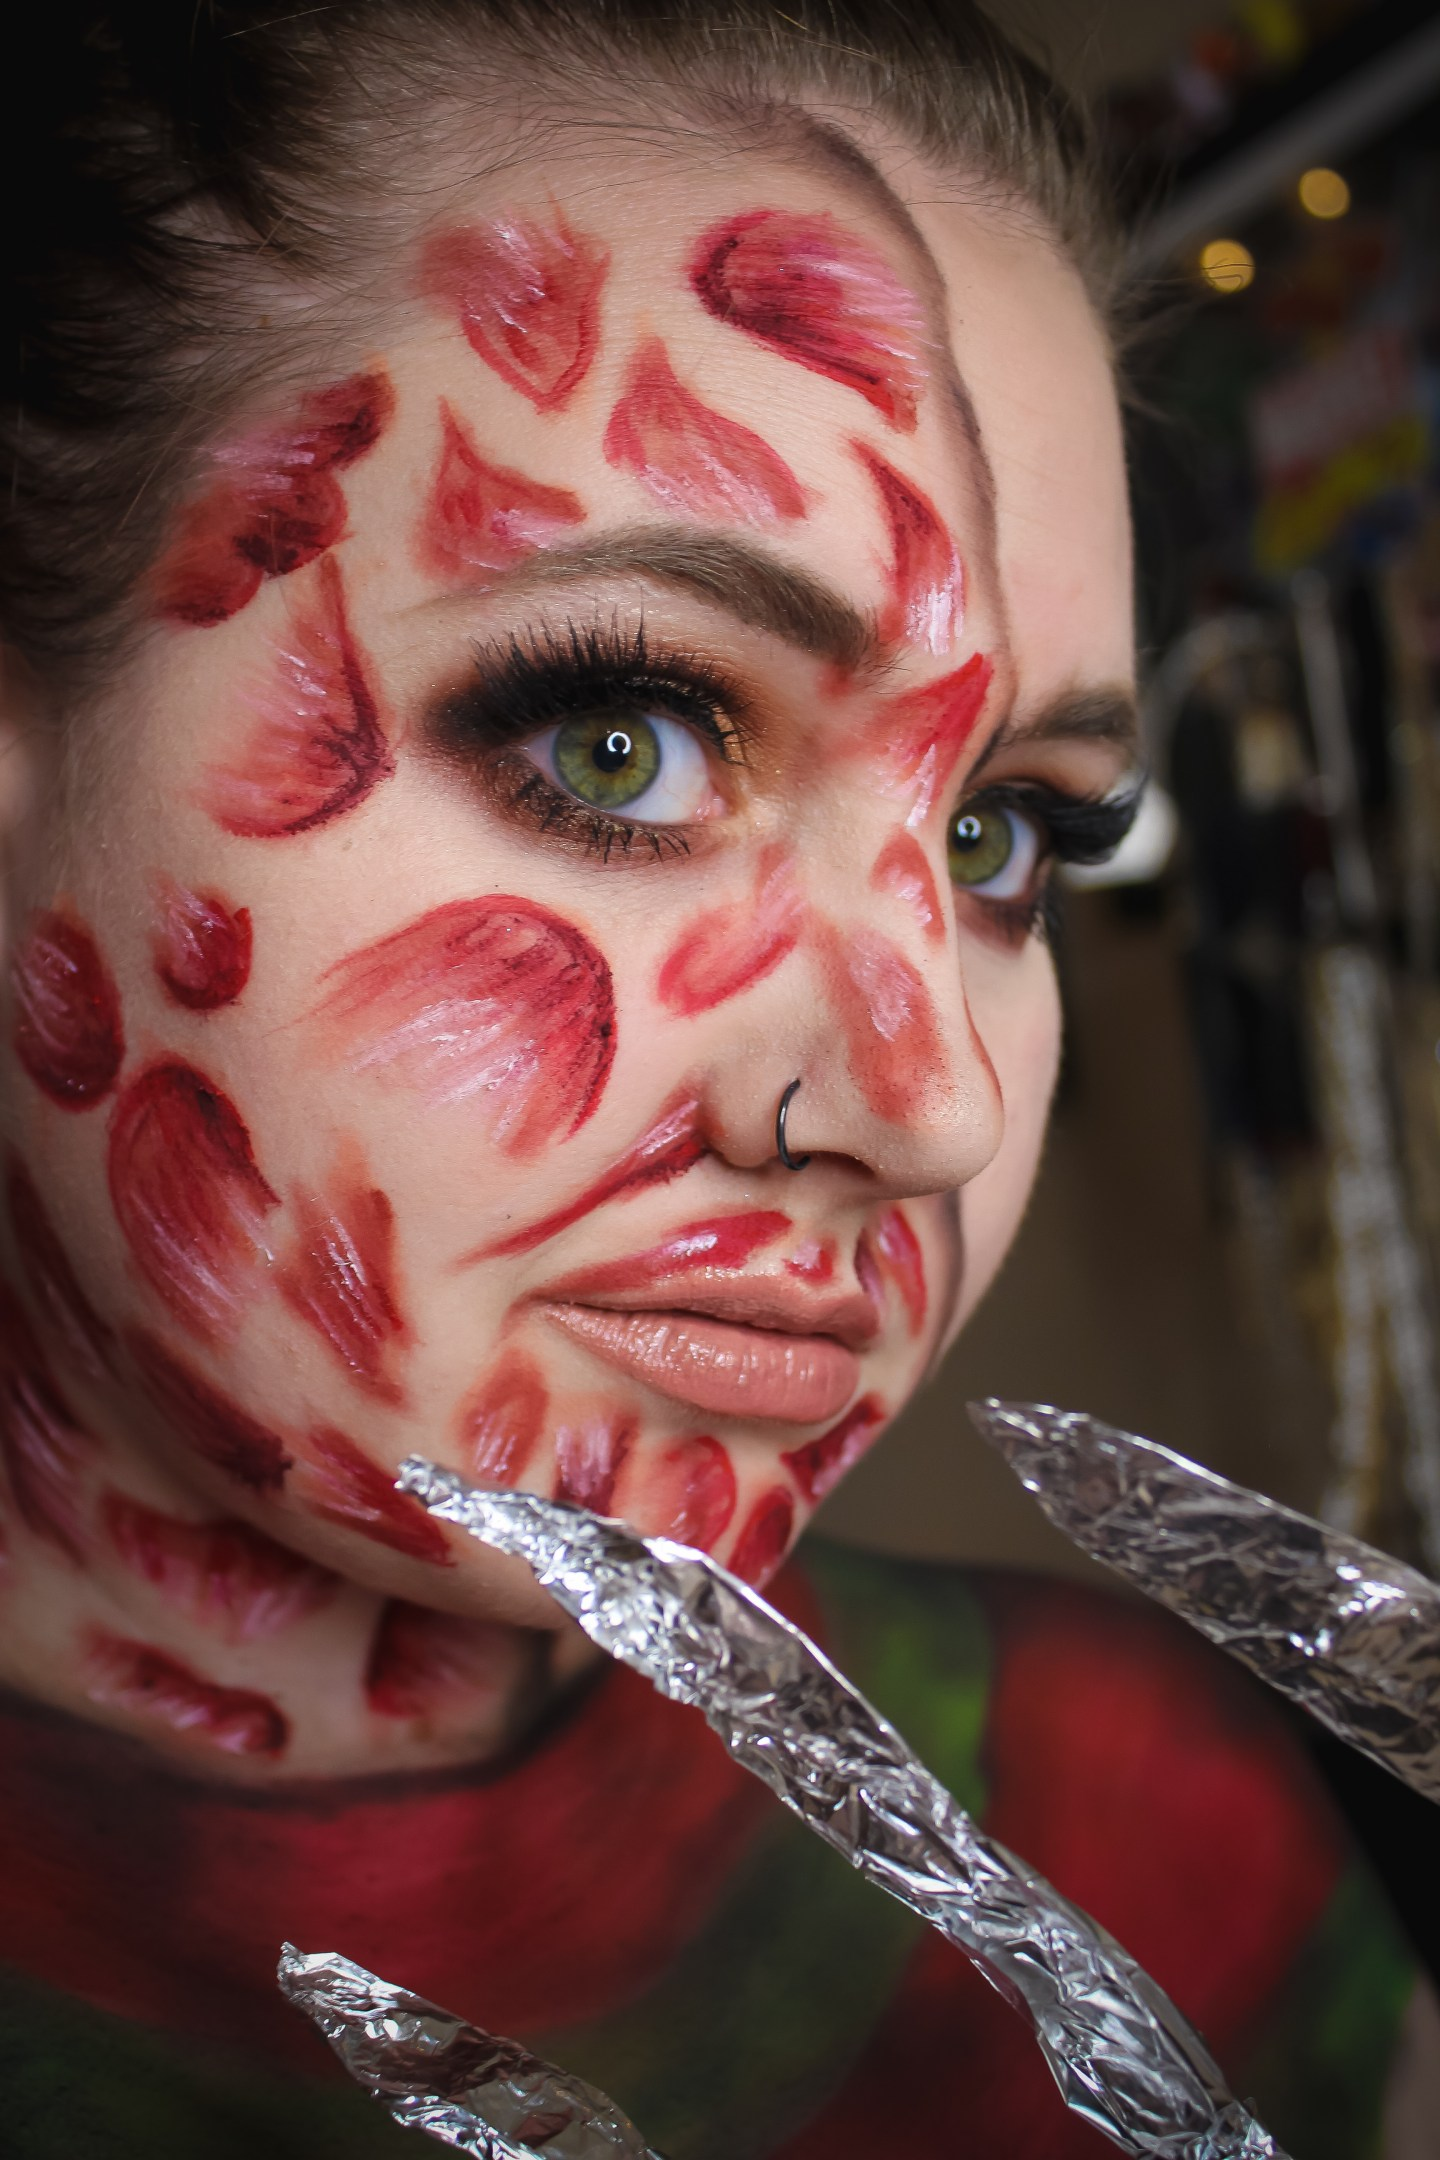 Why are you Screamin'? Freddy Krueger from A Nightmare on Elm Street Makeup Look 7